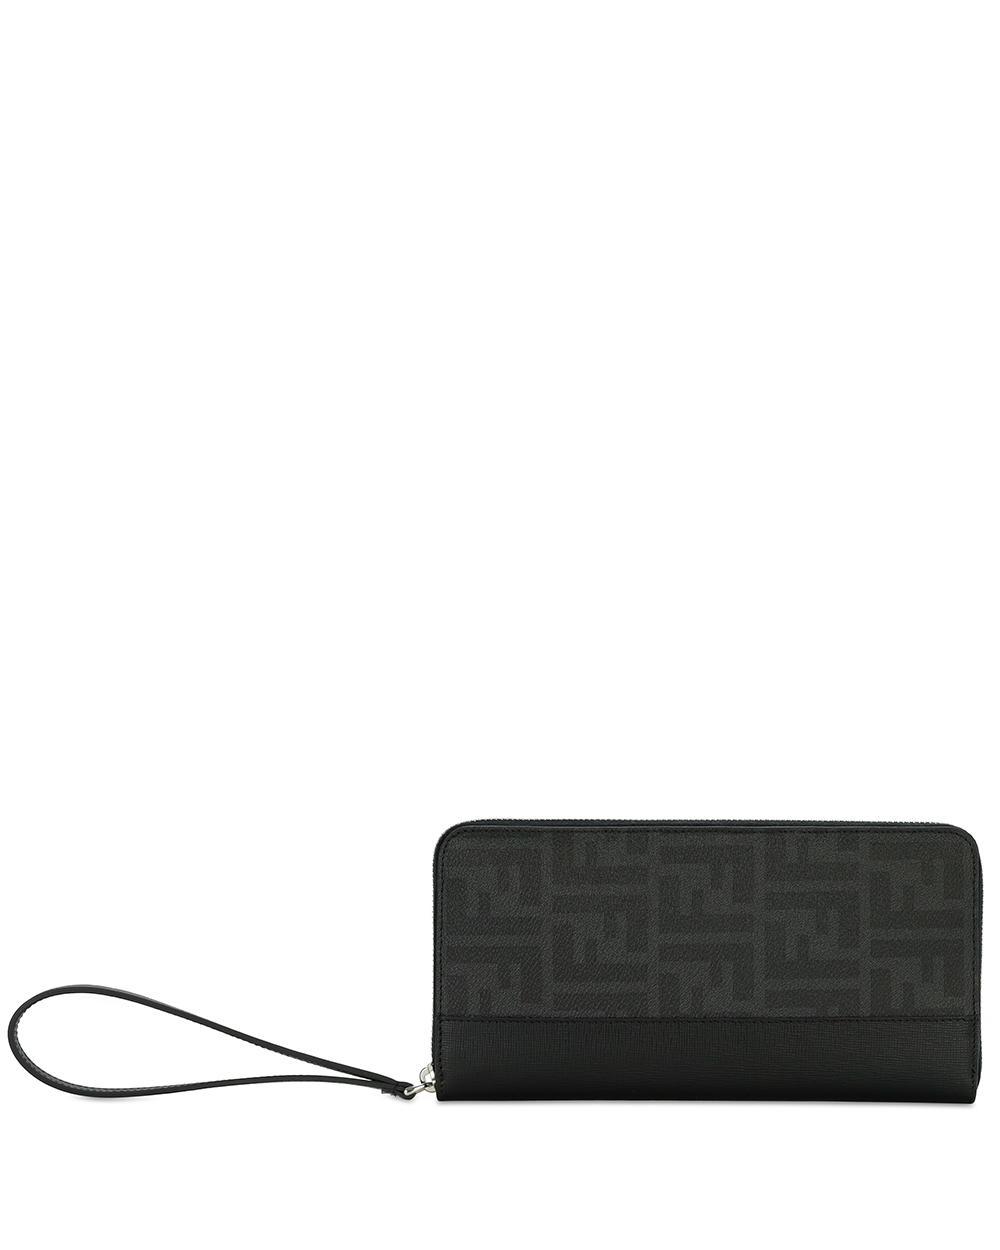 Zucca FF Leather Long Wallet